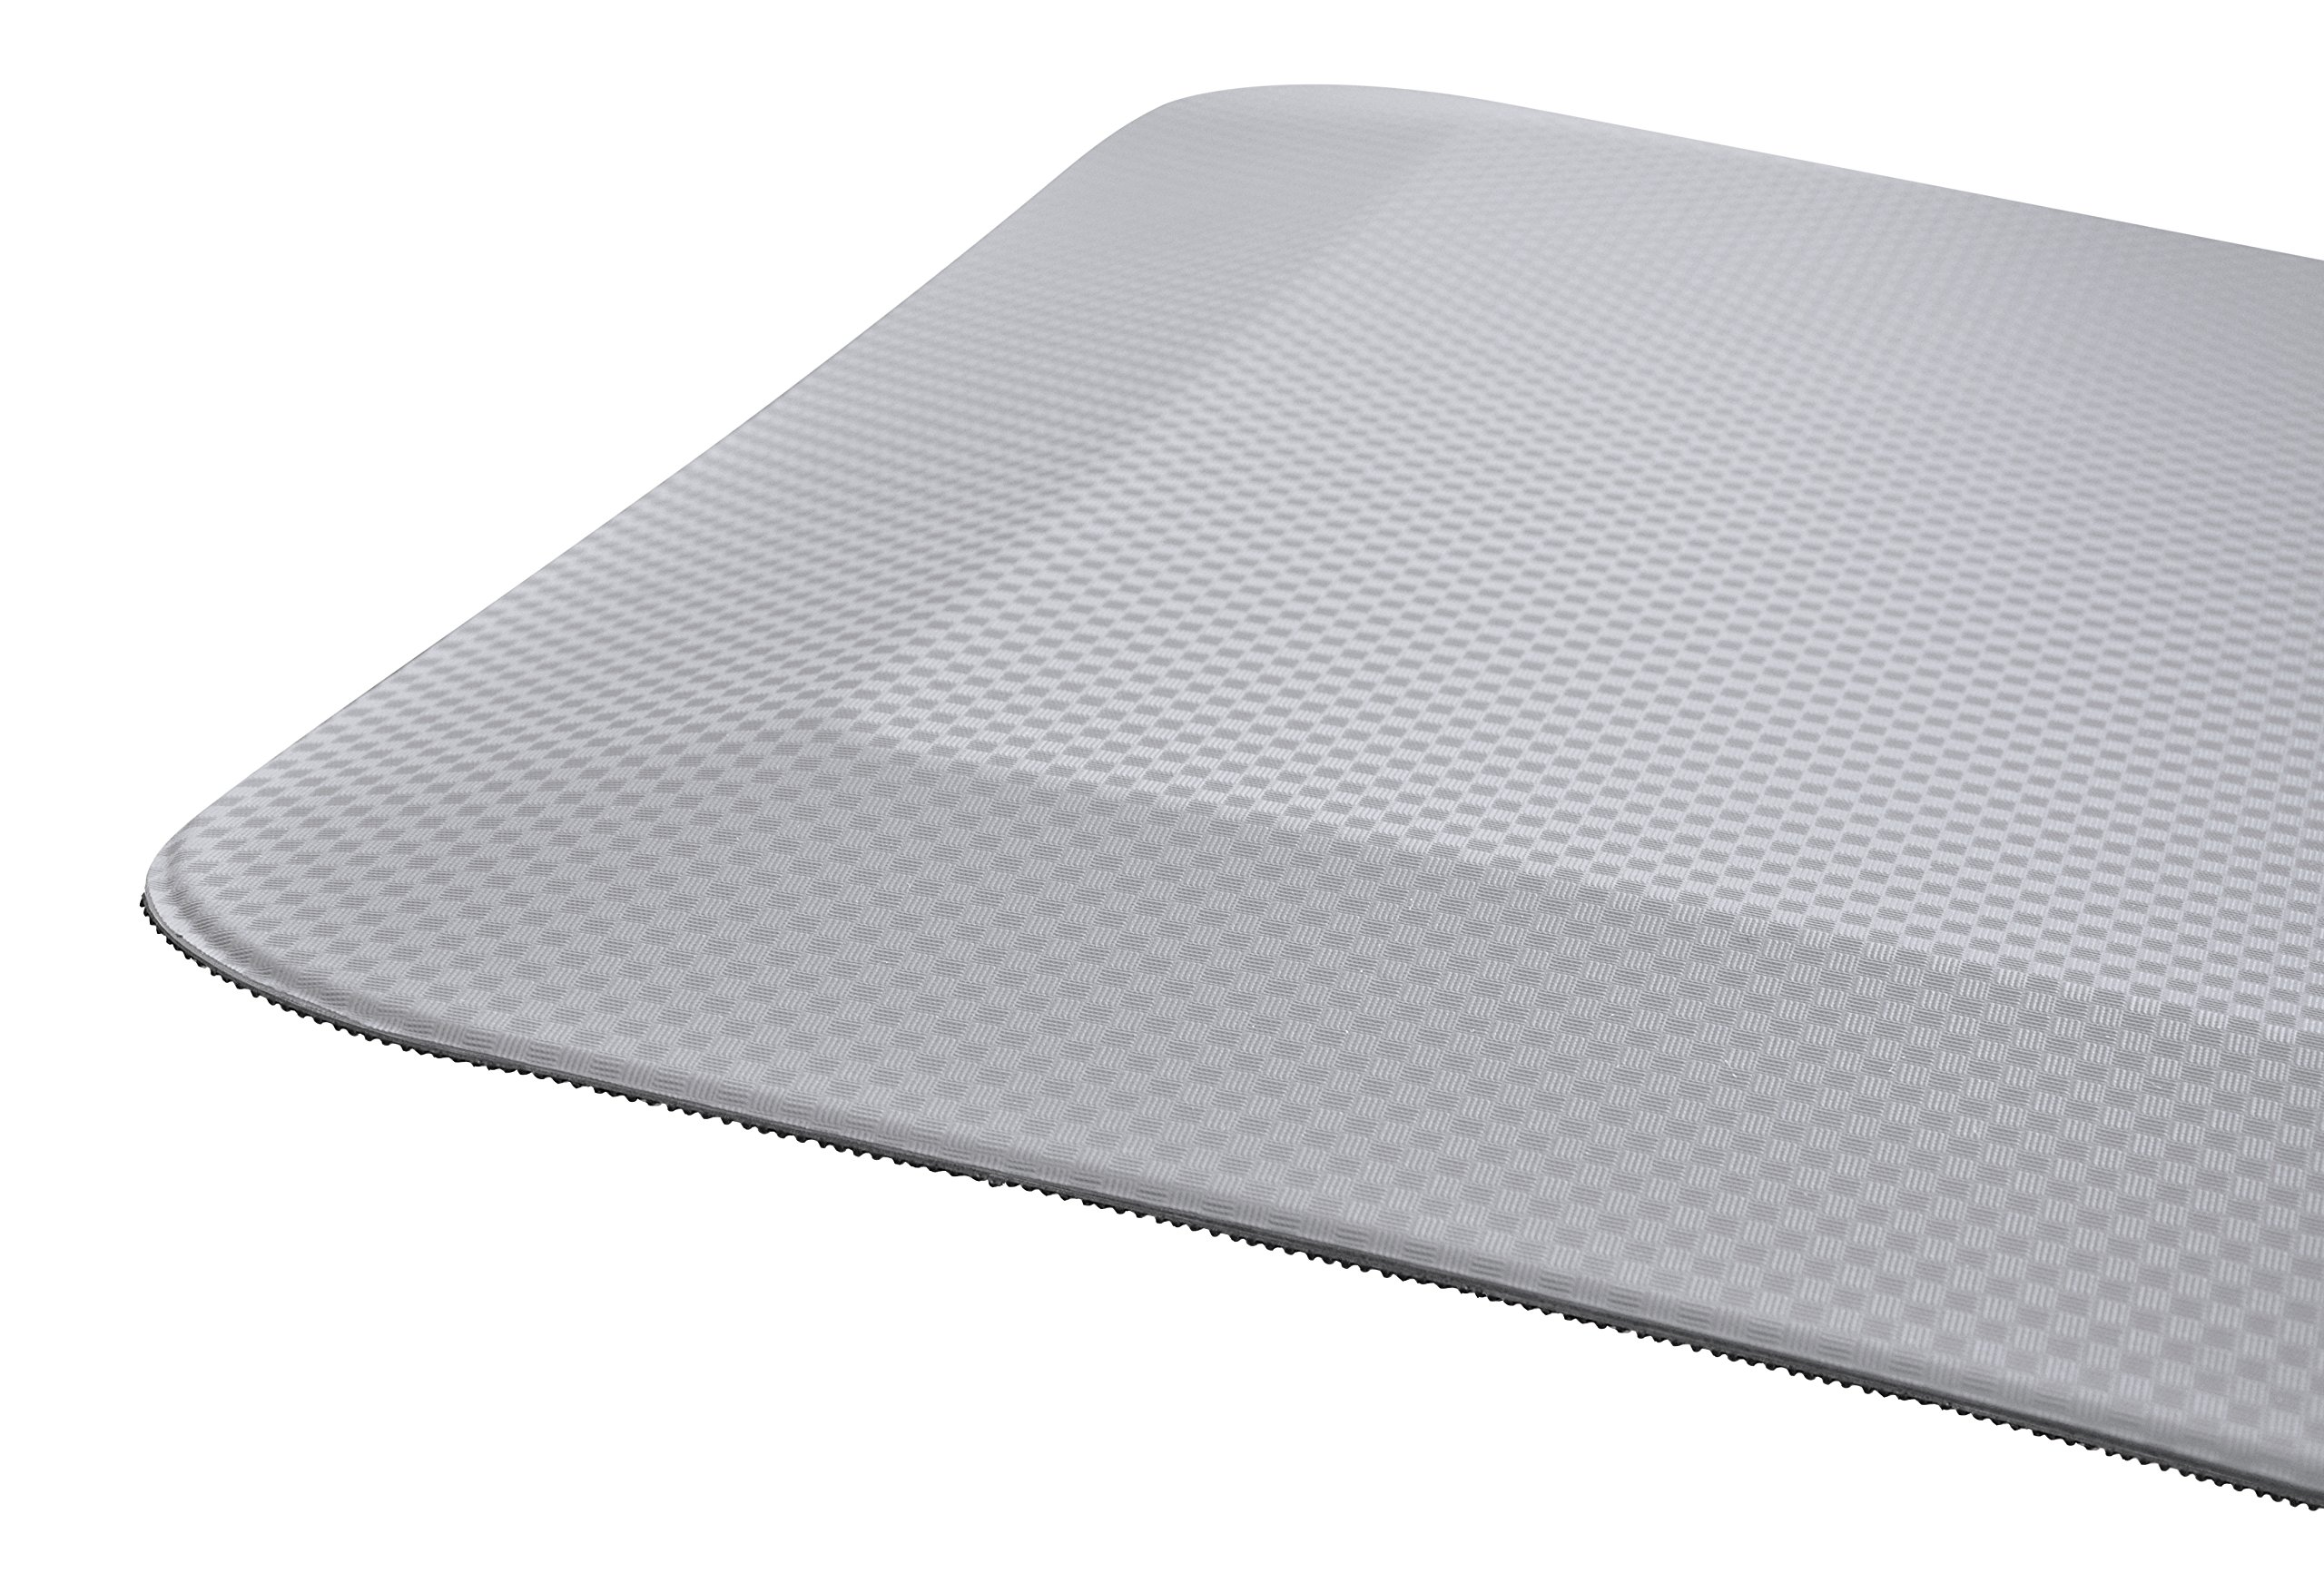 Nyortho Bedside Floor Mats For Elderly Fallshield